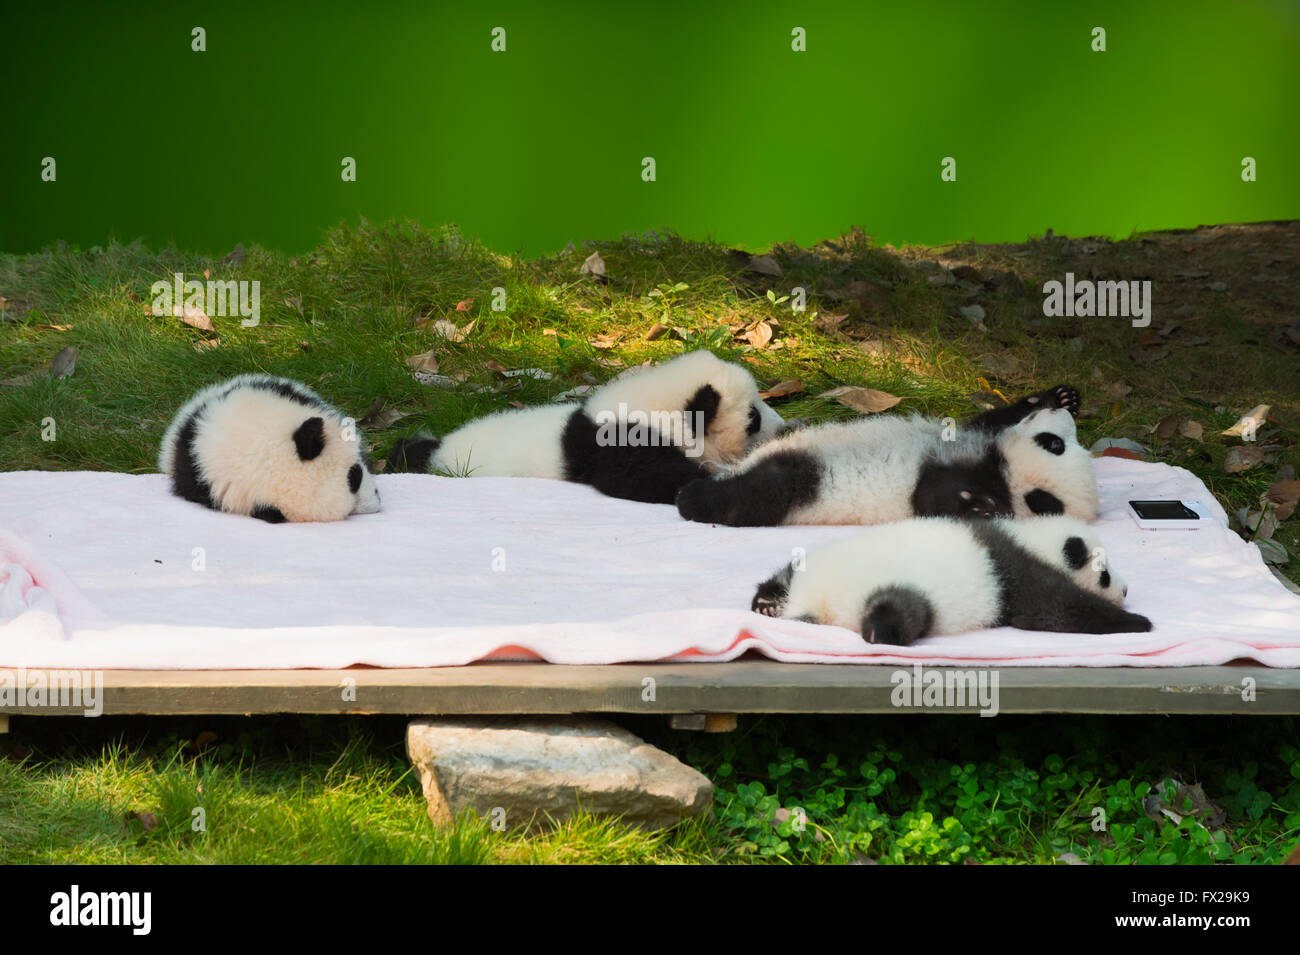 Baby Pandas (Ailuropoda melanoleuca) in the Chengdu Giant Panda Breeding Center, China Conservation and Research - Stock Image